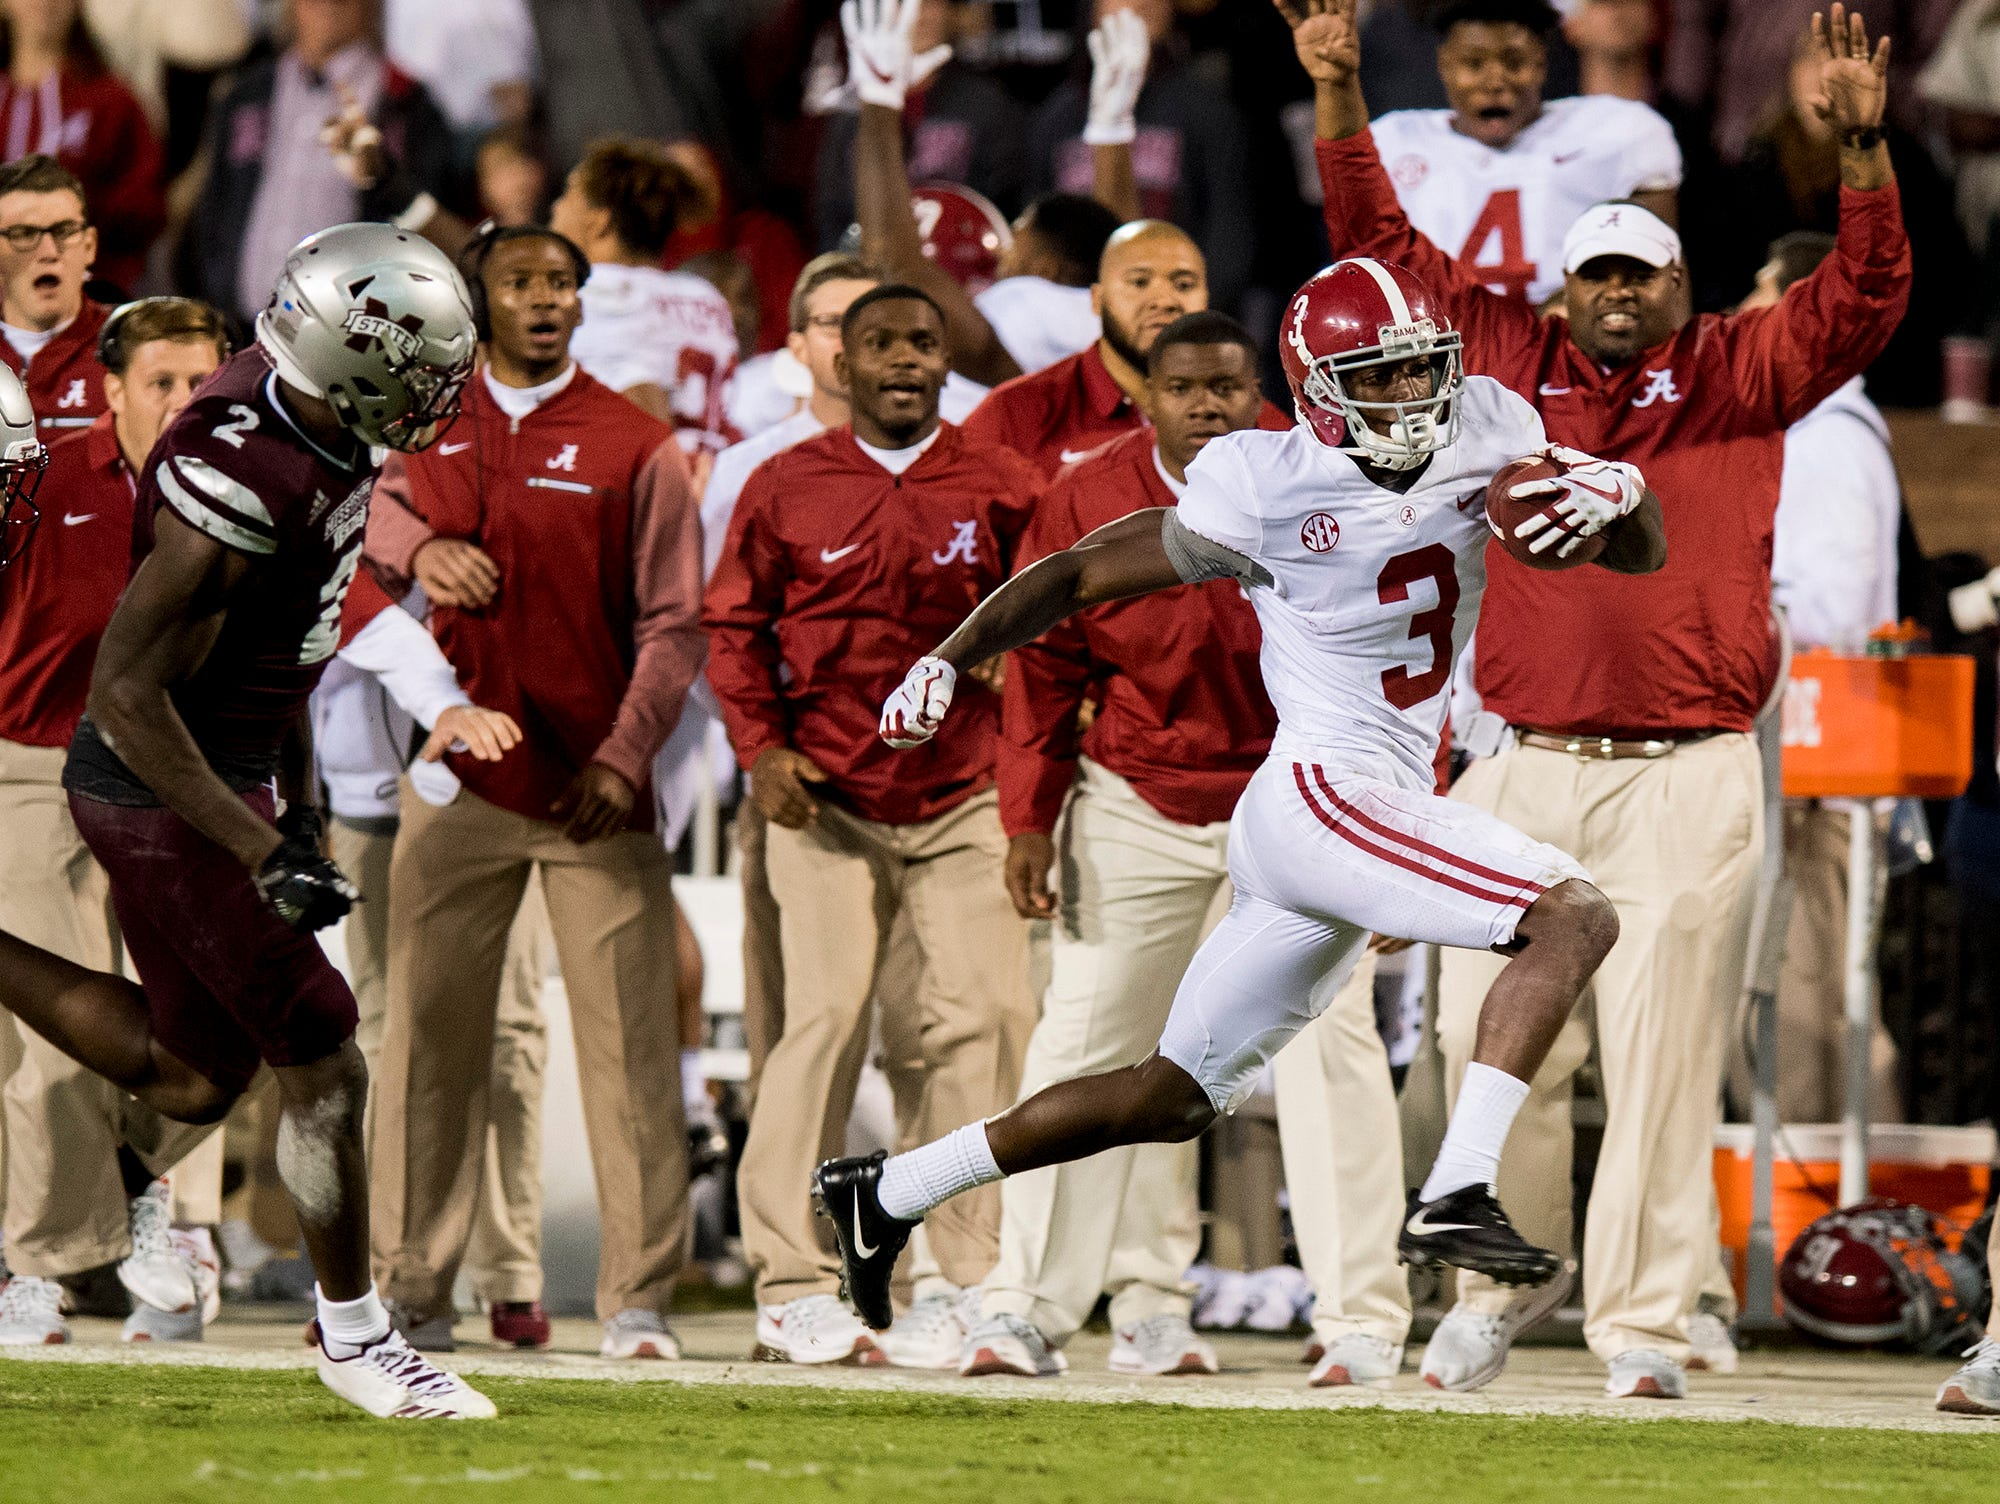 Alabama wide receiver Calvin Ridley (3) makes big yardage on a fourth quarter reception against Mississippi State in Starkville, Ms. on Saturday November 11, 2017. (Mickey Welsh / Montgomery Advertiser)